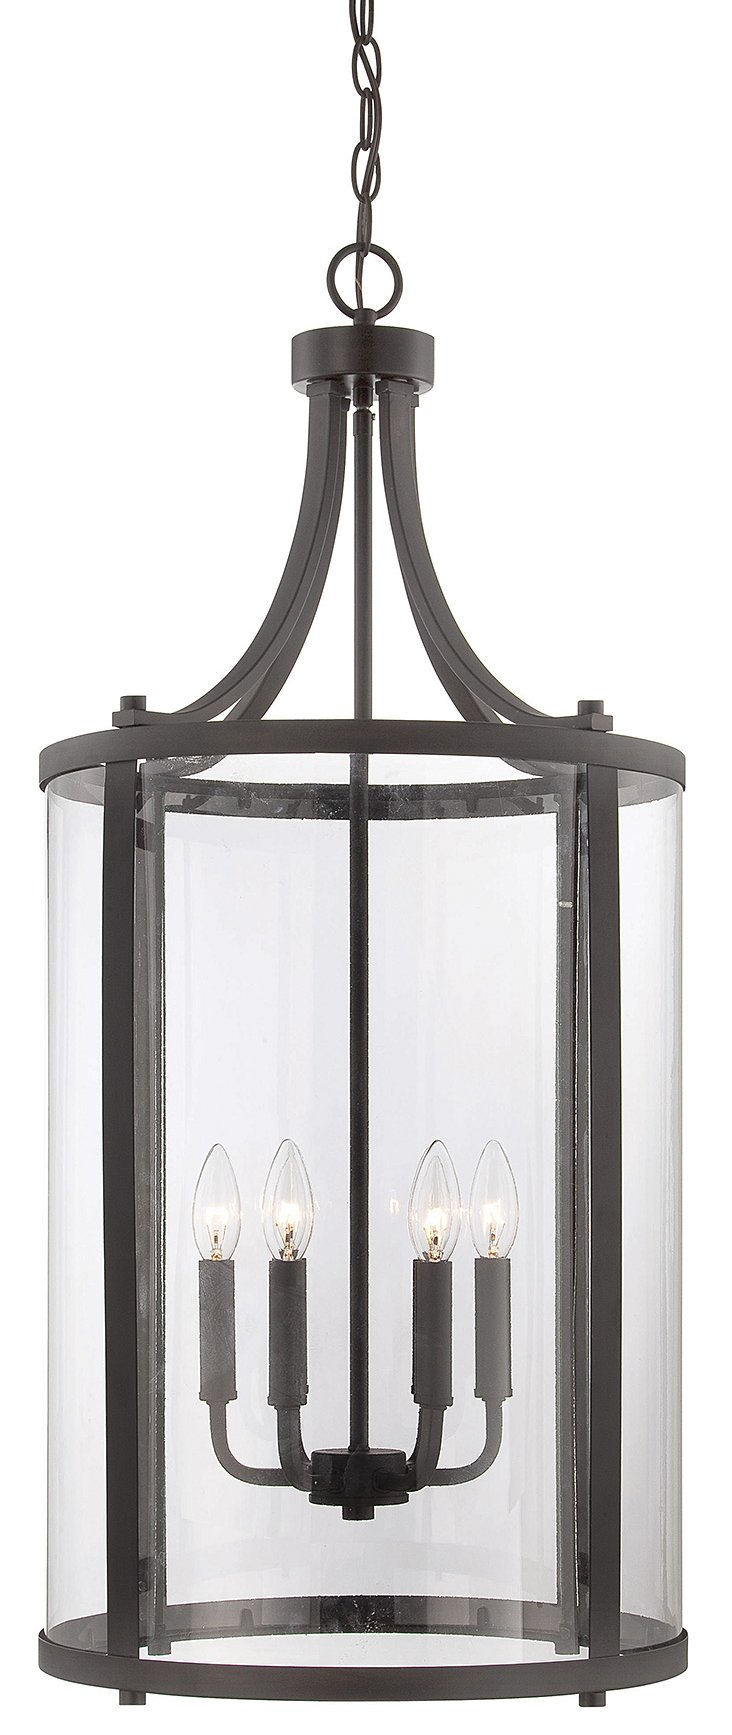 Savoy House Foyer Light : Savoy house lighting penrose transitional